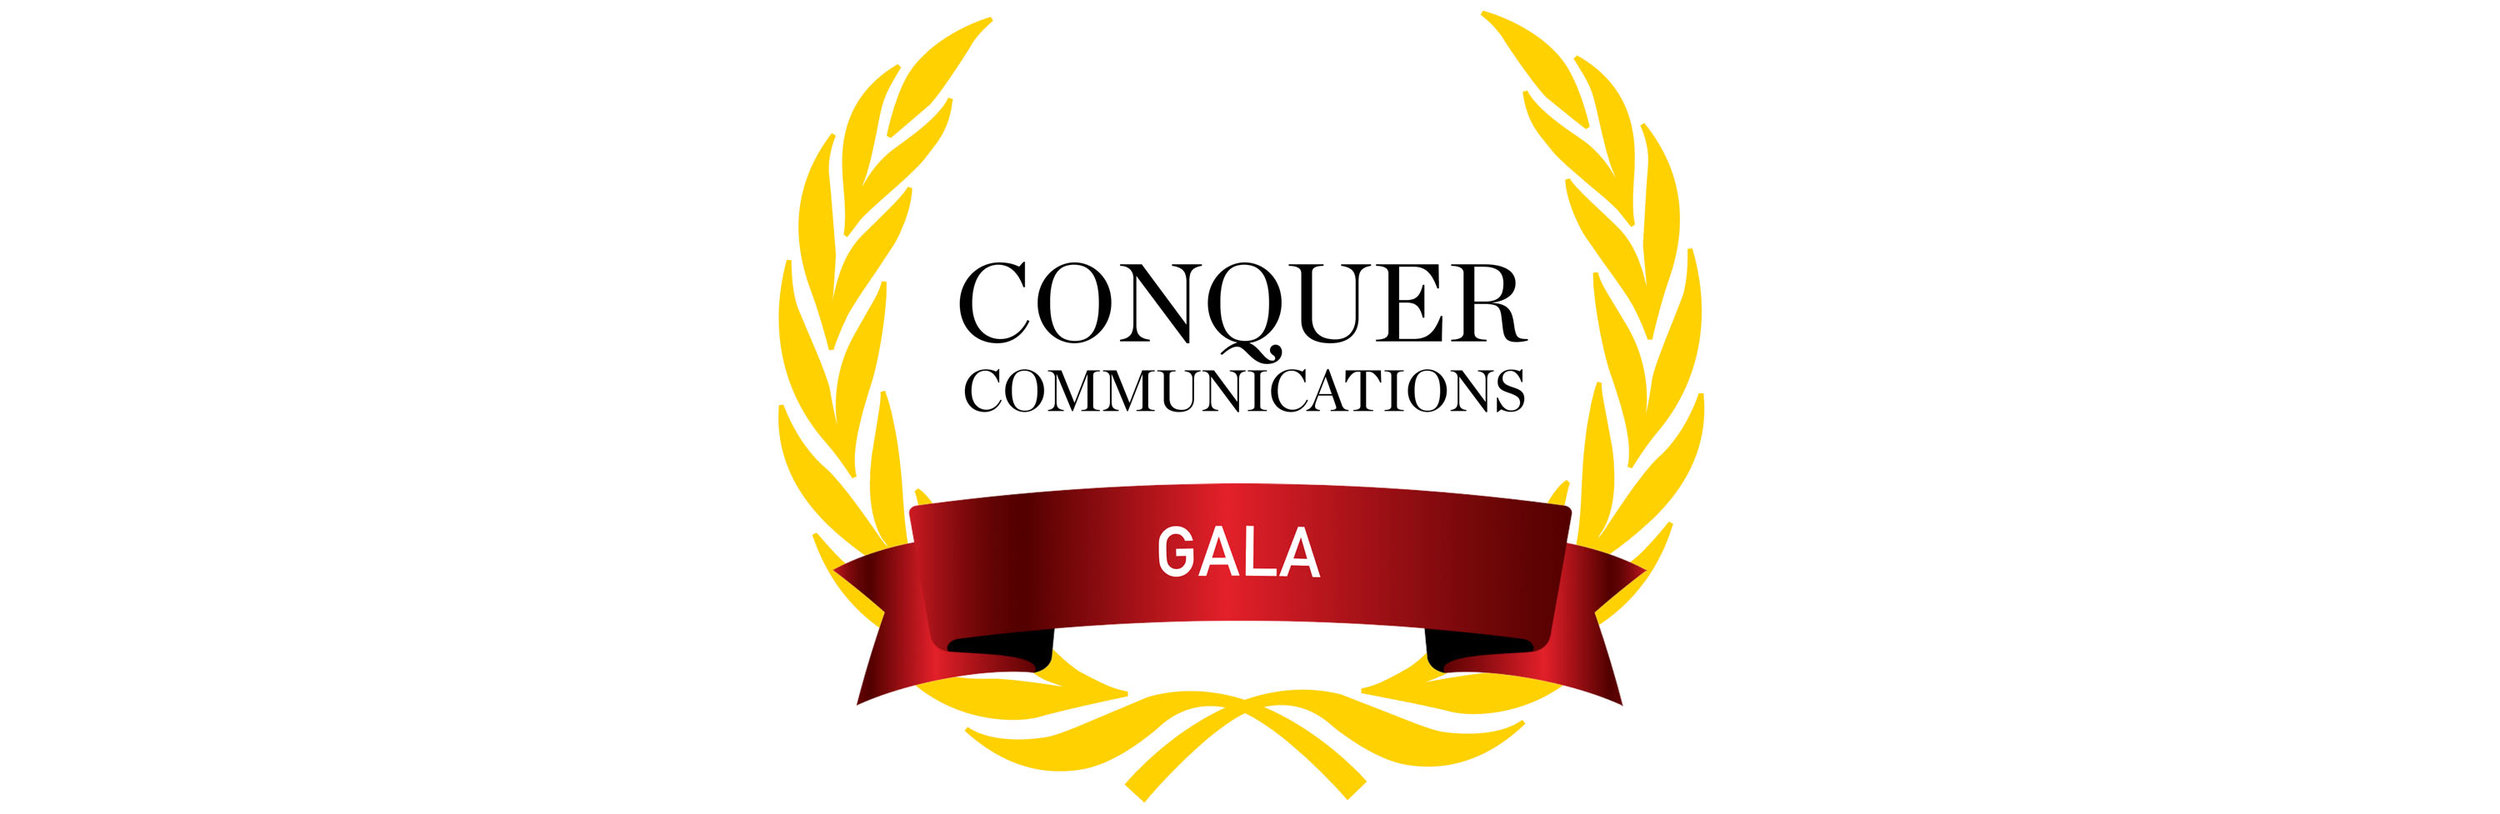 Conquer Communications Gala - Kosmic Creative (Graphic Design).jpg